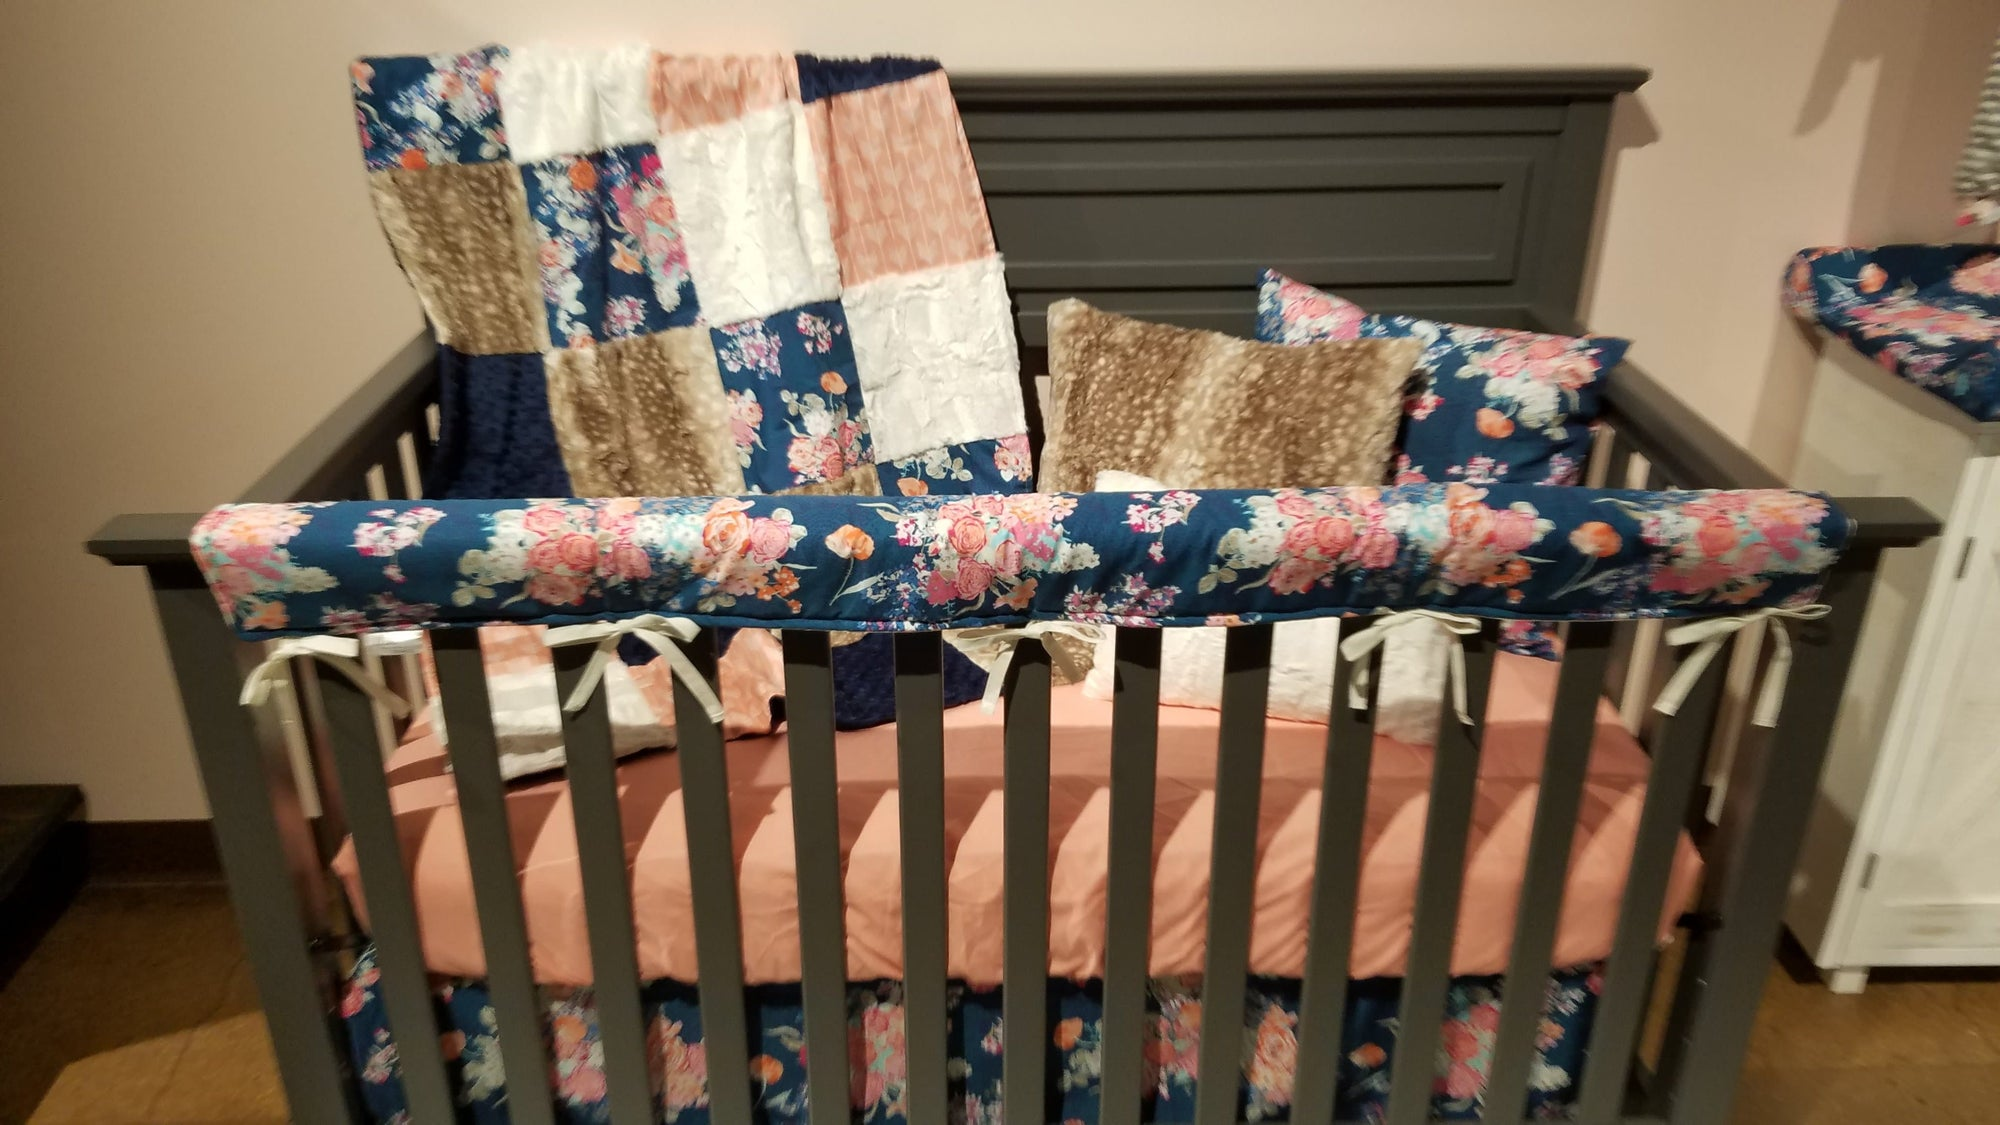 Pre-Order Girl Crib Bedding - Navy Floral, Coral Arrows, Fawn Minky, Coral, and Ivory, Floral Nursery Collection